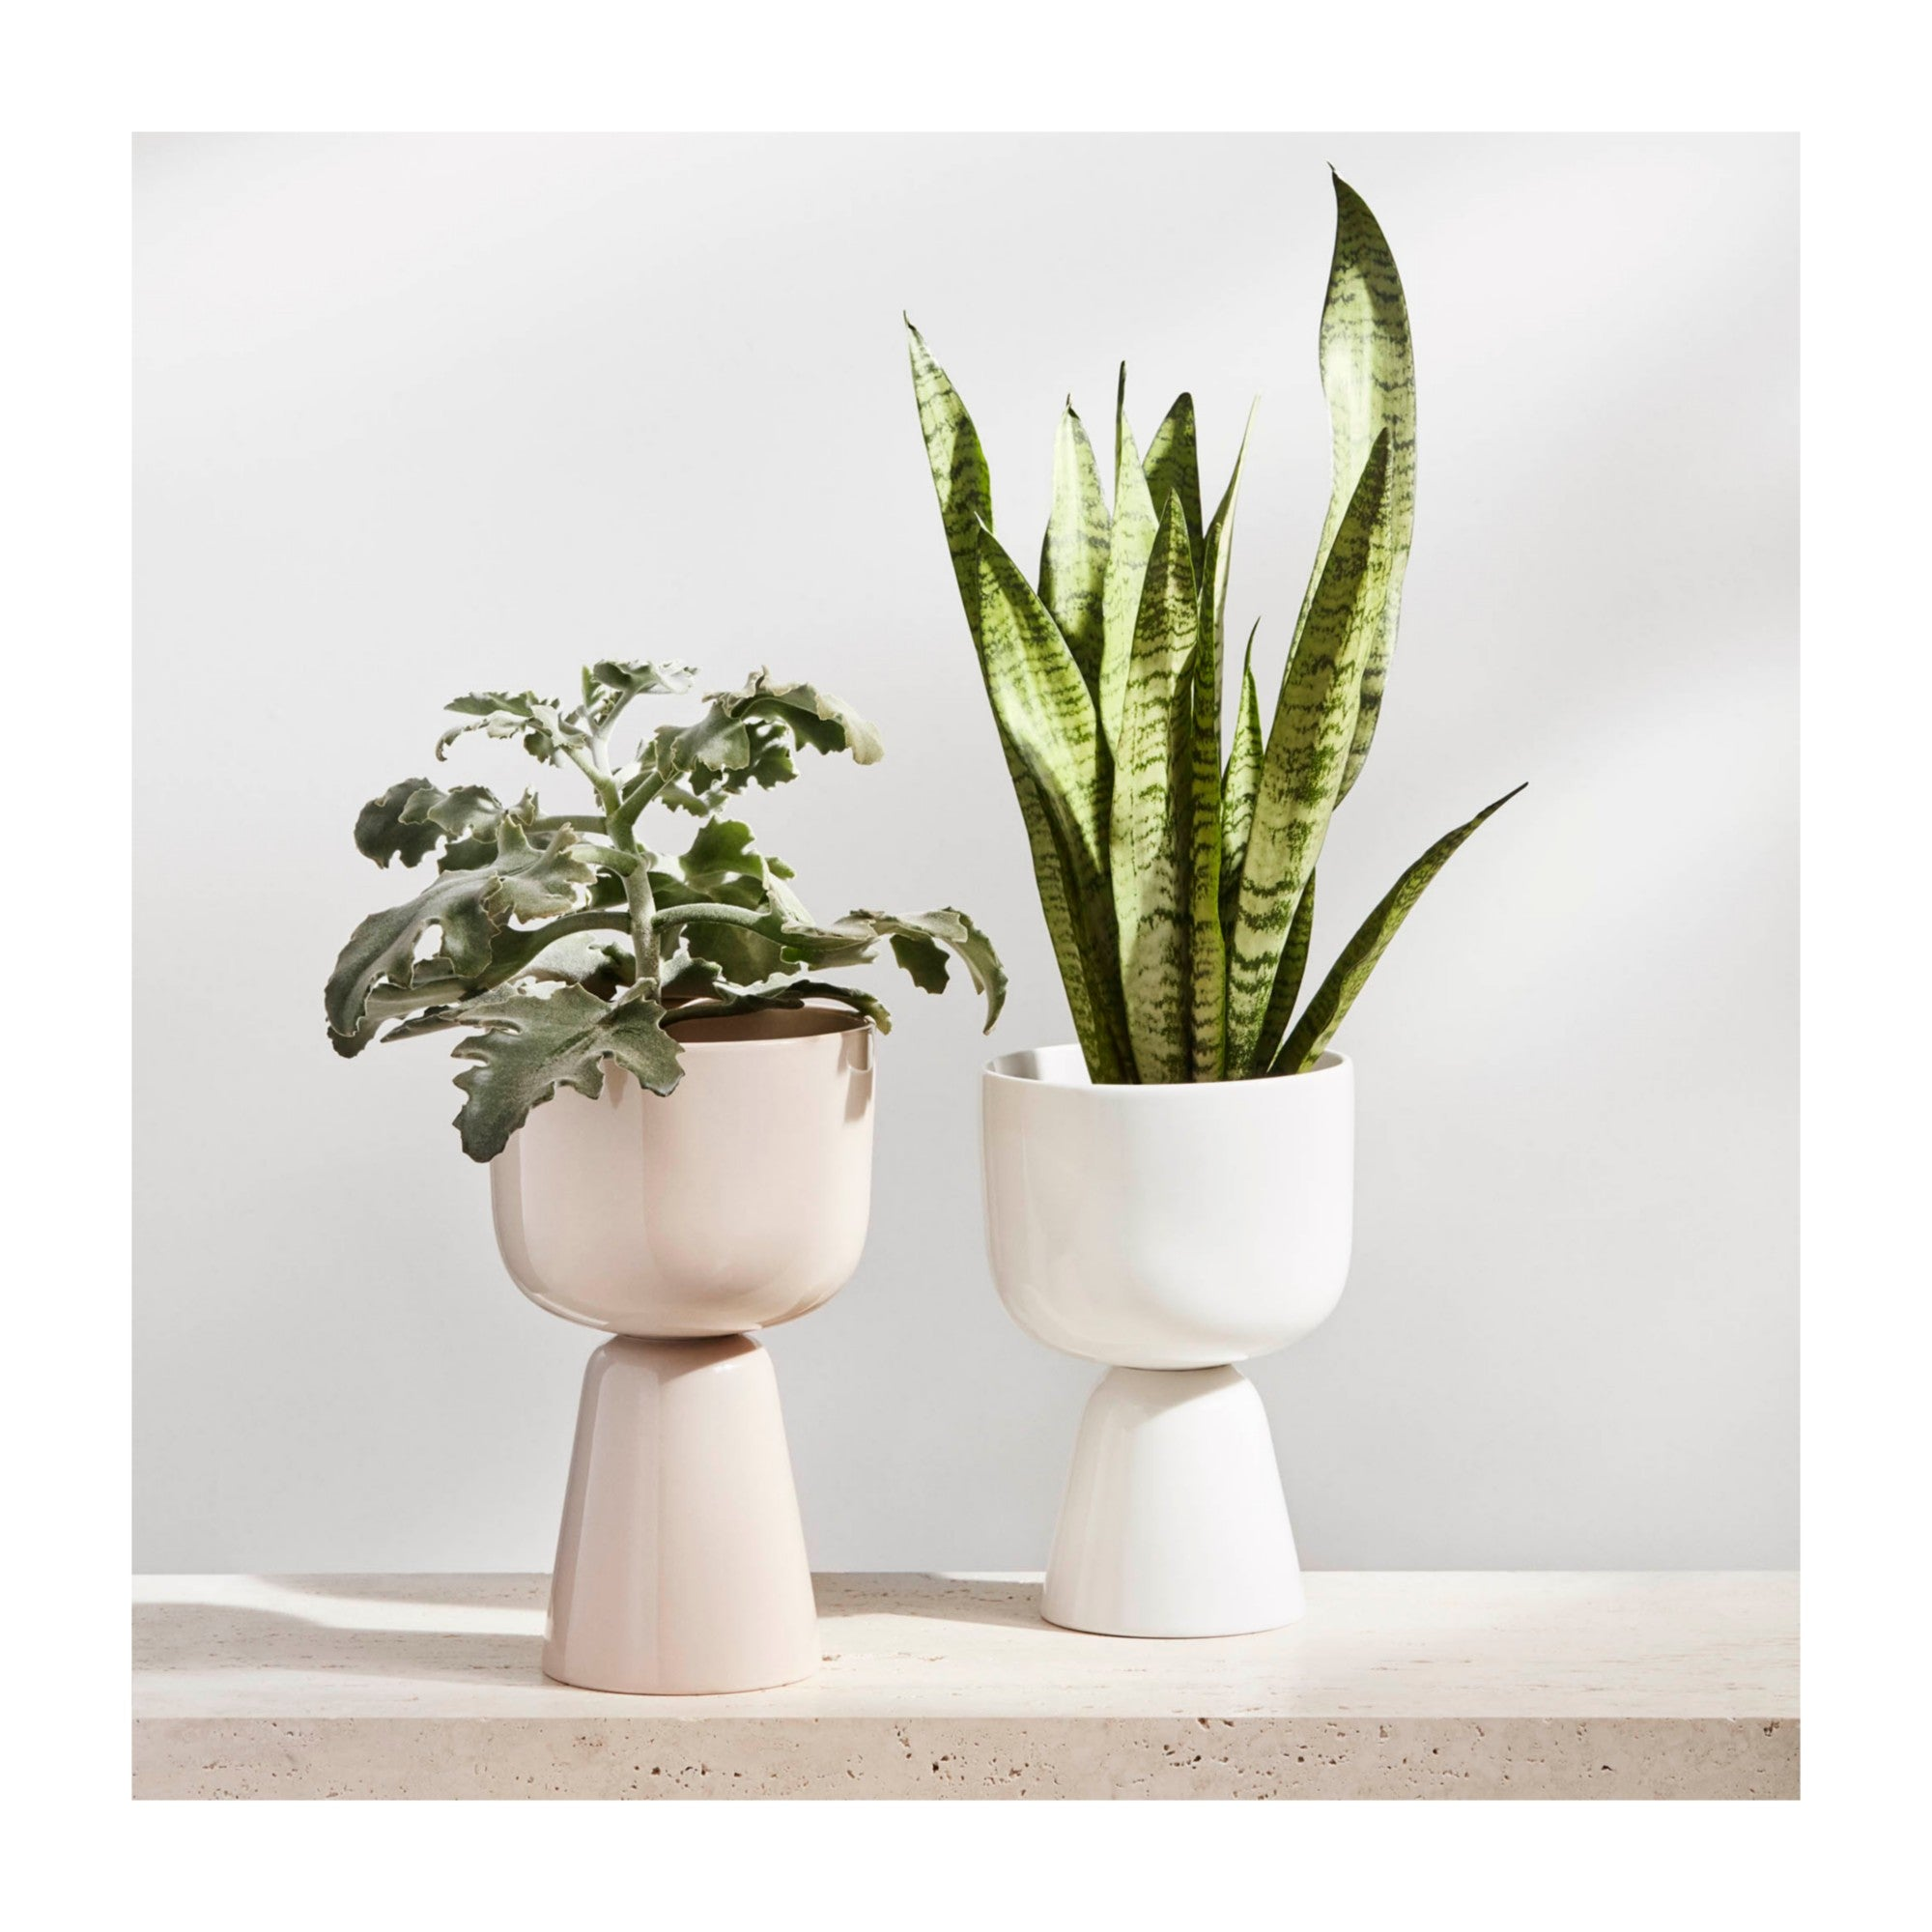 "Nappula plant pot 230 x 155 mm / 9 X 6"" White"